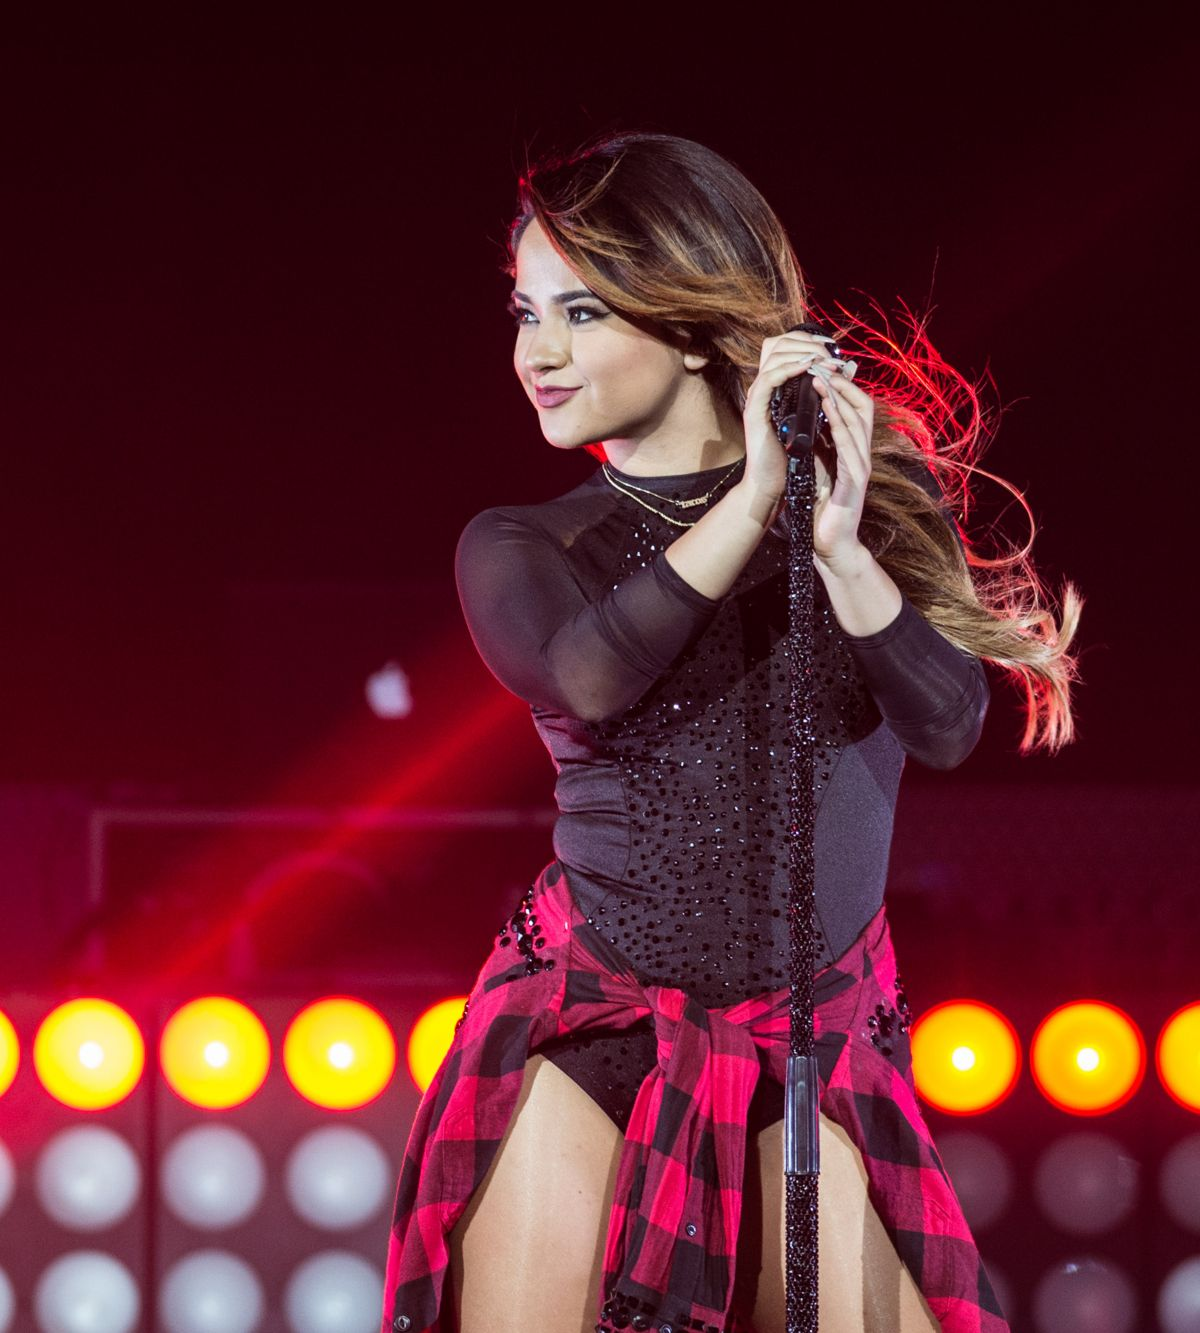 BECKY G Performs at Hard Rock Hotel & Casino in Las Vegas ...